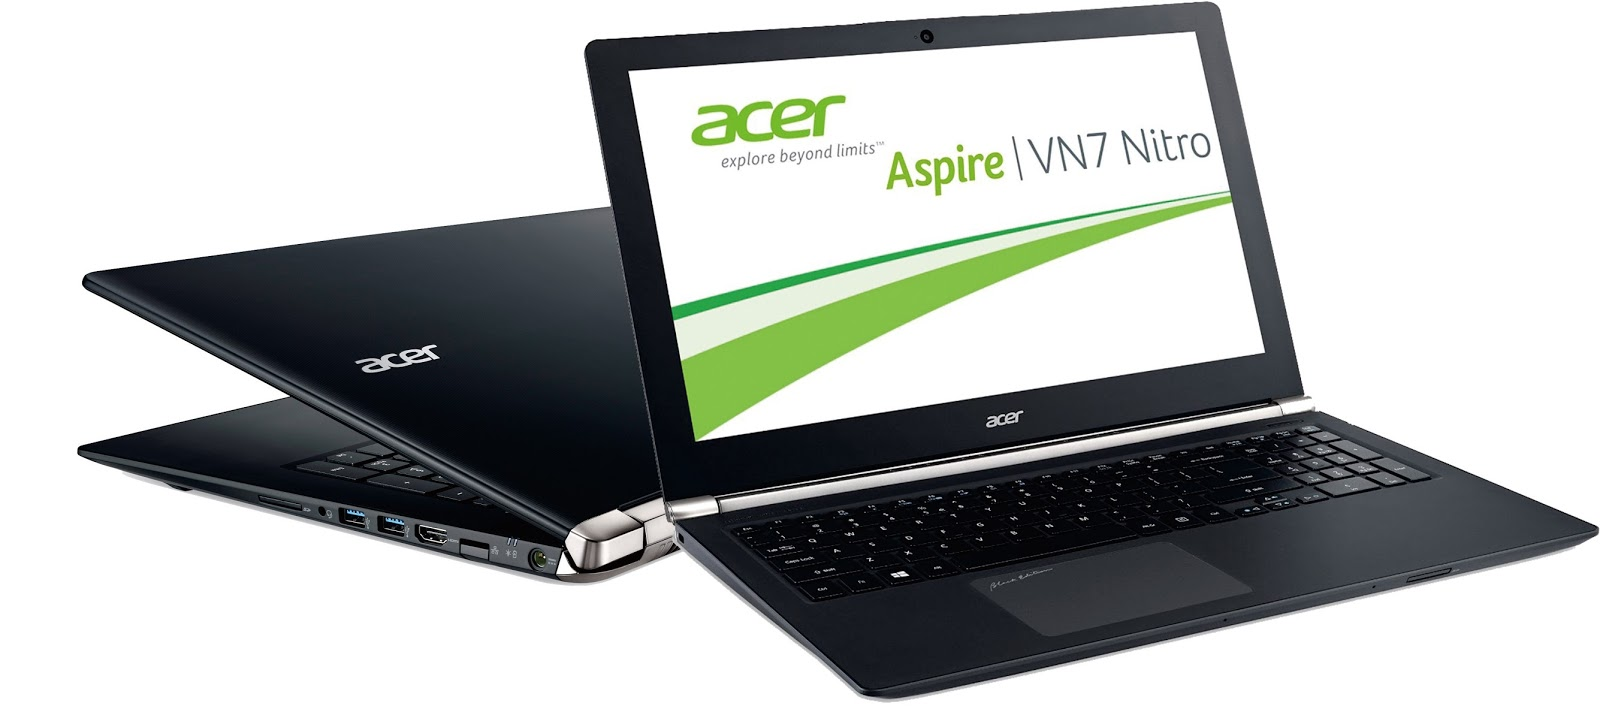 Download the latest version of Driver Acer aspire free in ...